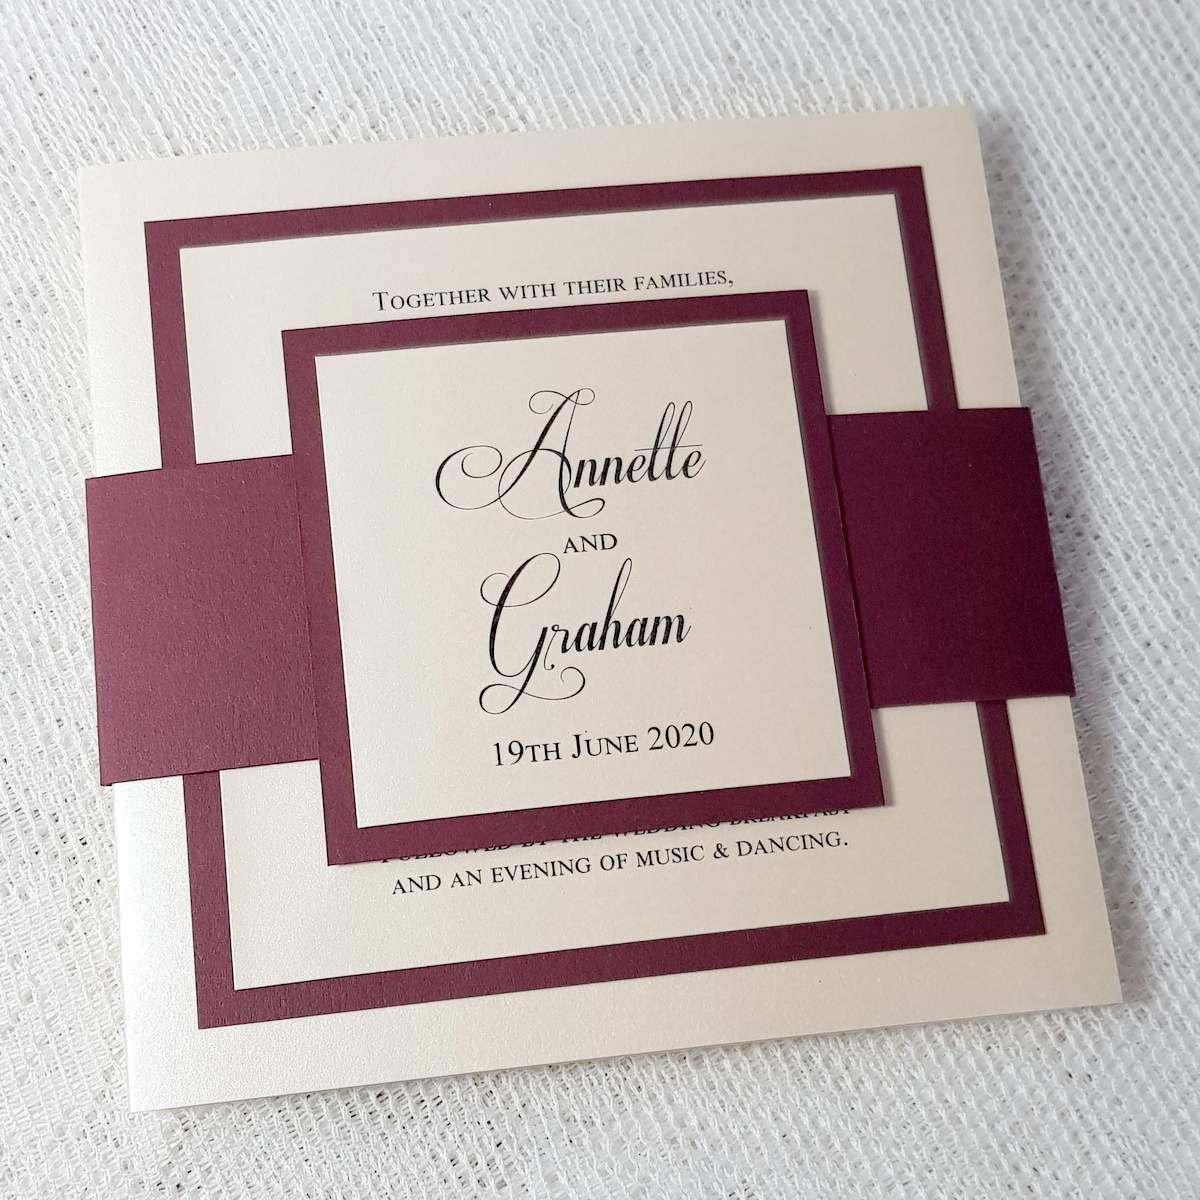 ivory concertina invitation with a burgundy border and bellyband